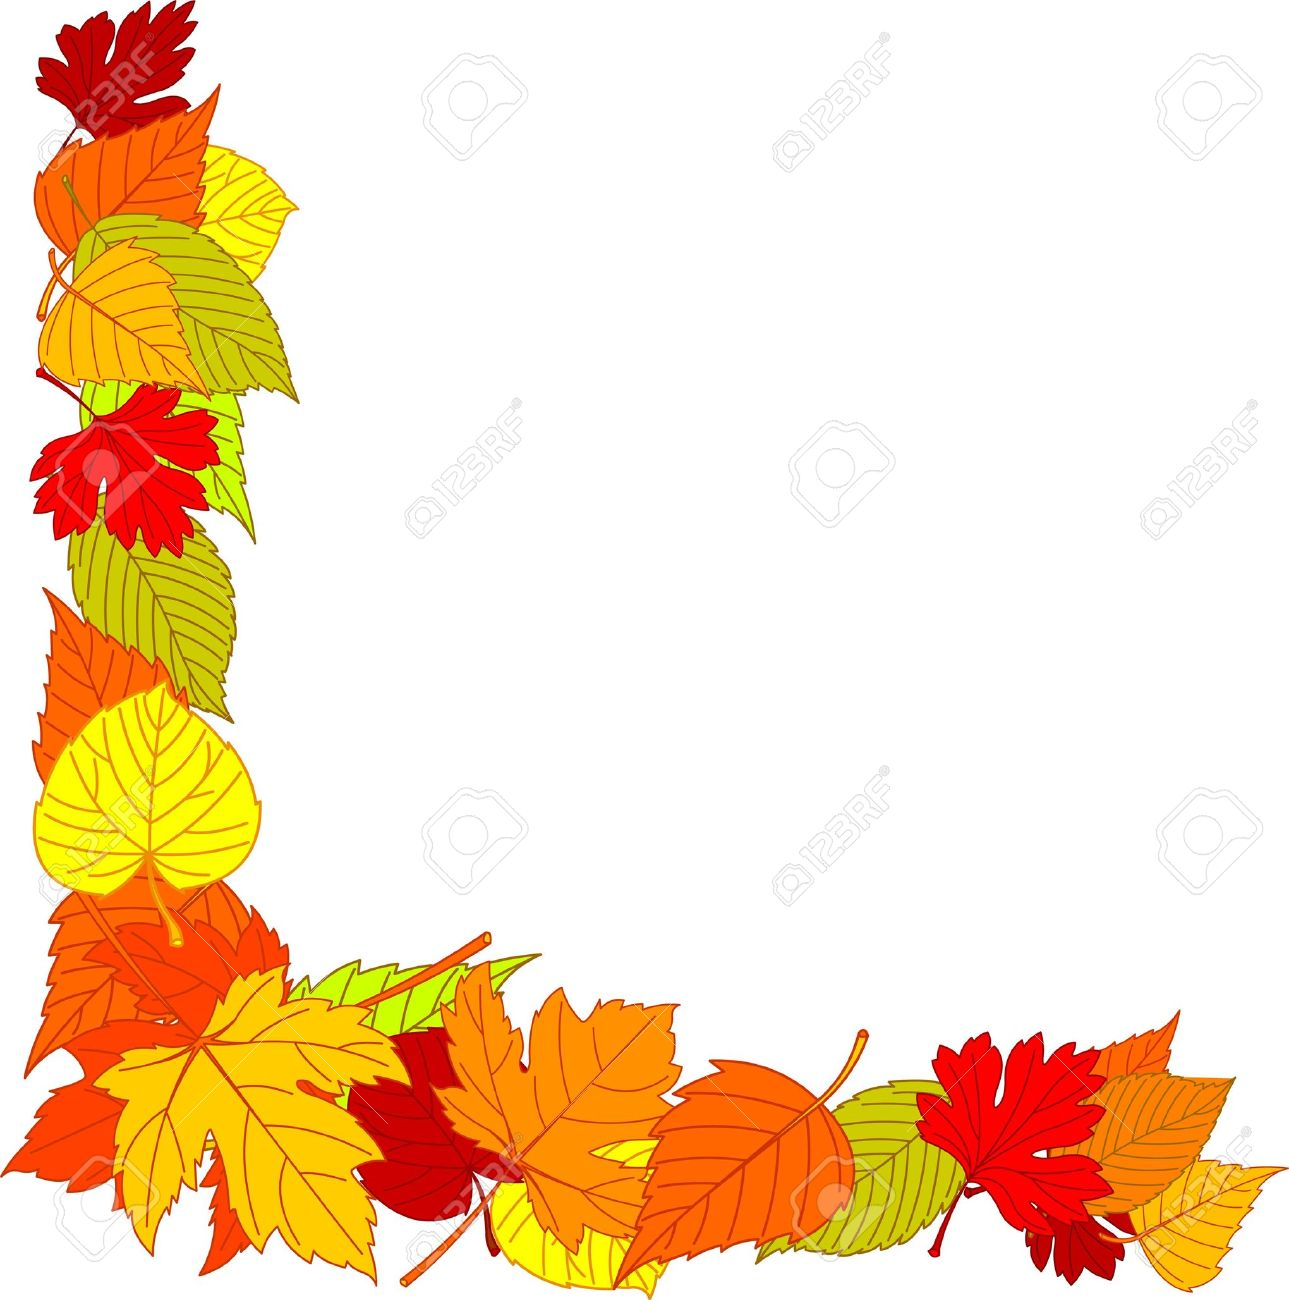 fall leaves page corner borders royalty free cliparts vectors and rh 123rf com fall border clip art images fall border clip art images